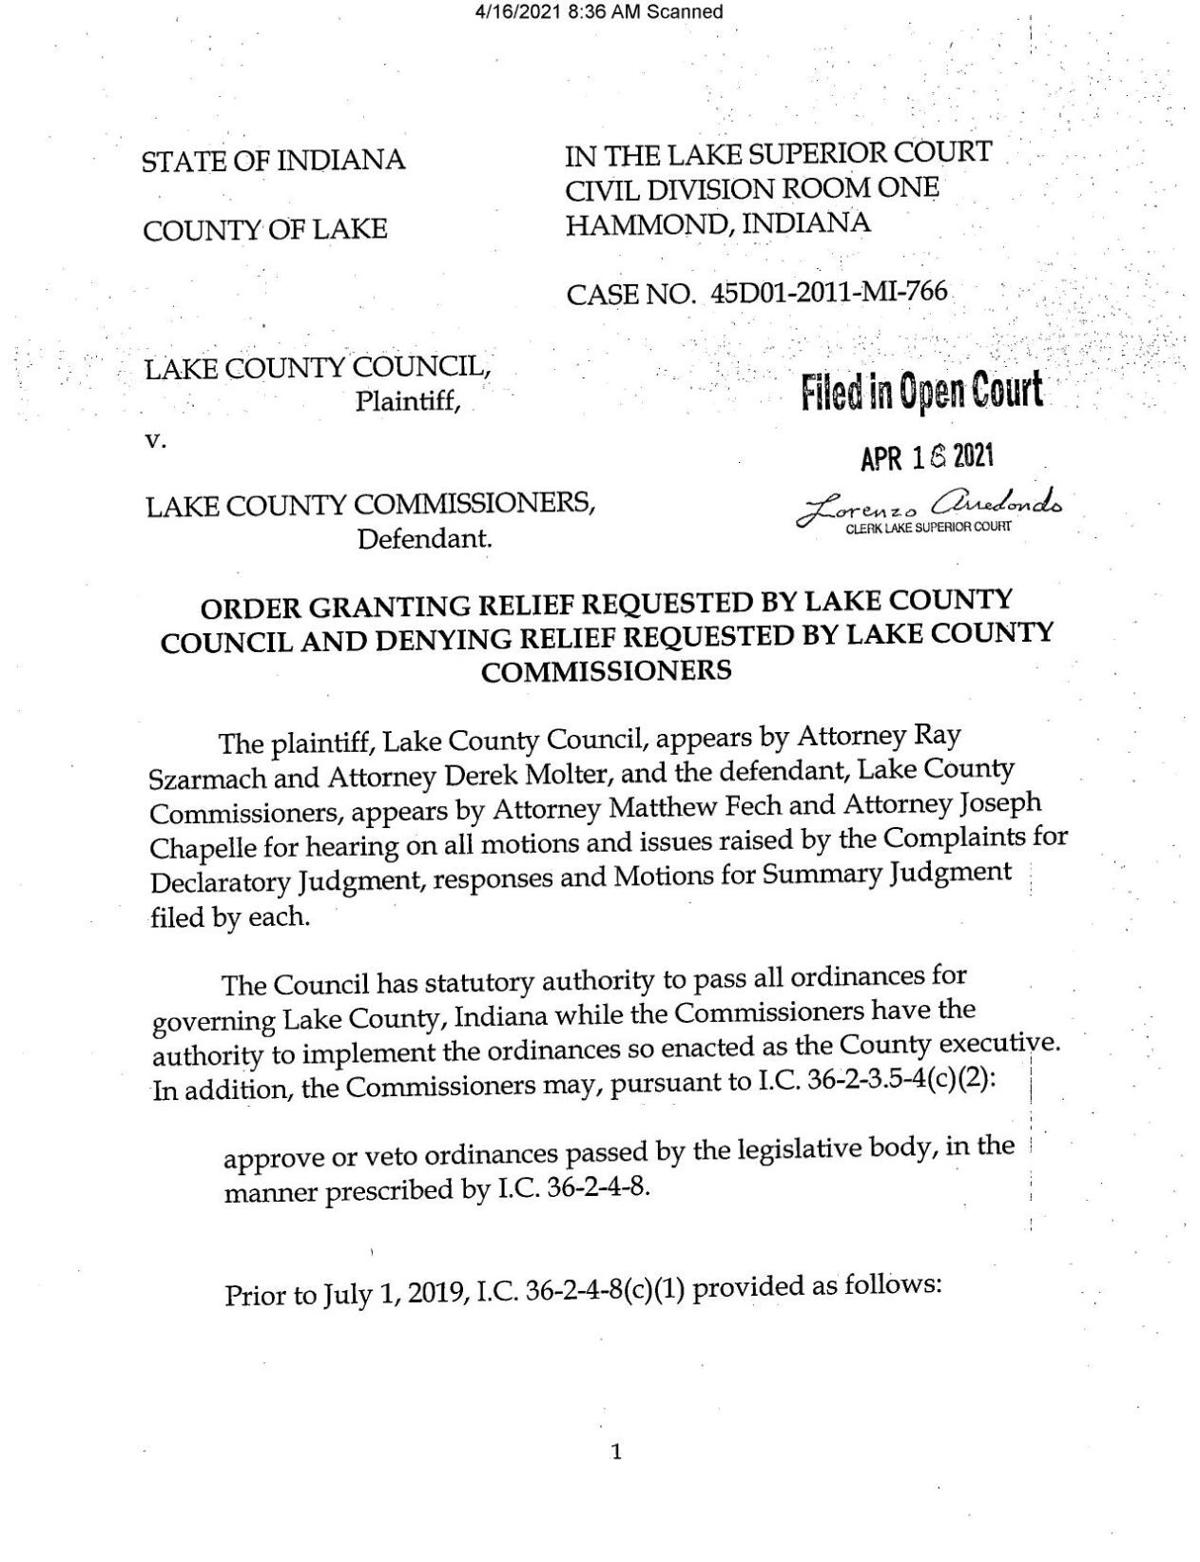 Court ruling in Lake County Council v. Lake County Commissioners